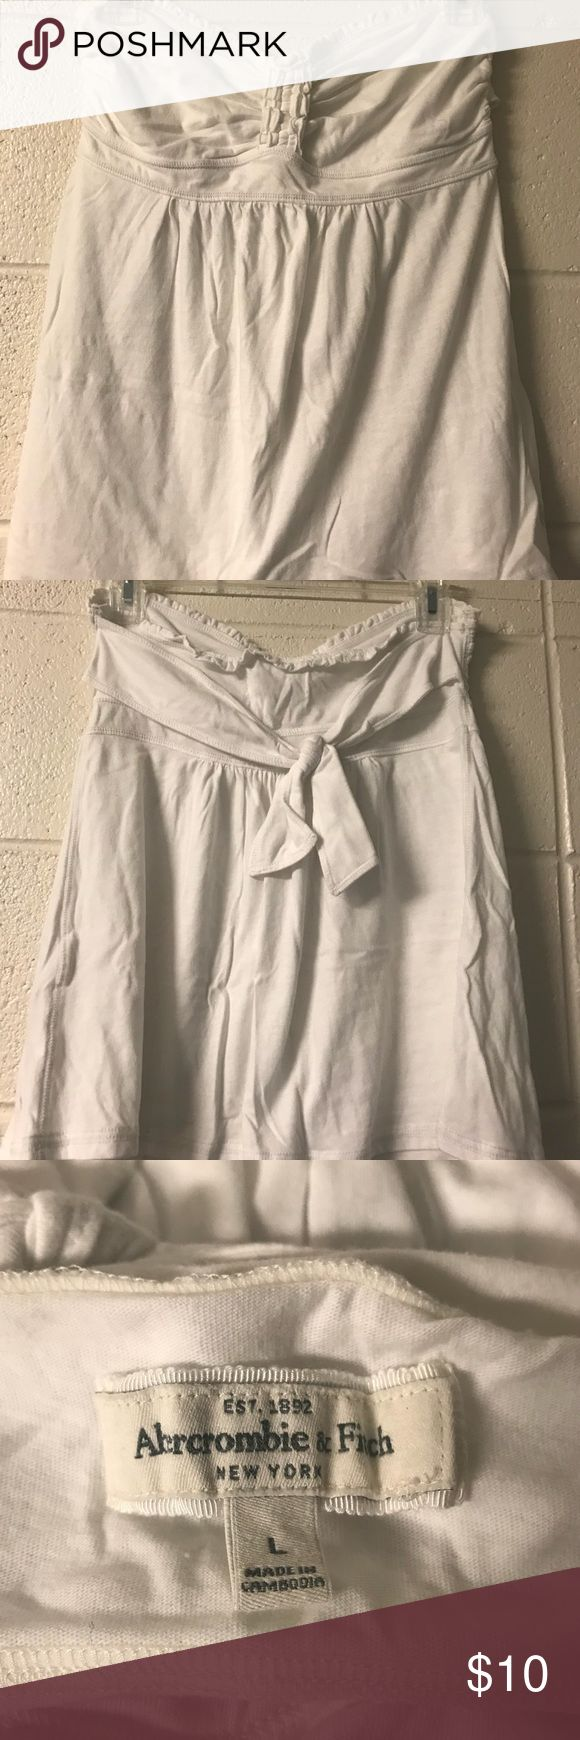 White Strapless Abercrombie and Fitch Top Barely worn strapless white Abercrombie and Fitch top with small stain on front (shown in last picture) Abercrombie & Fitch Tops Camisoles